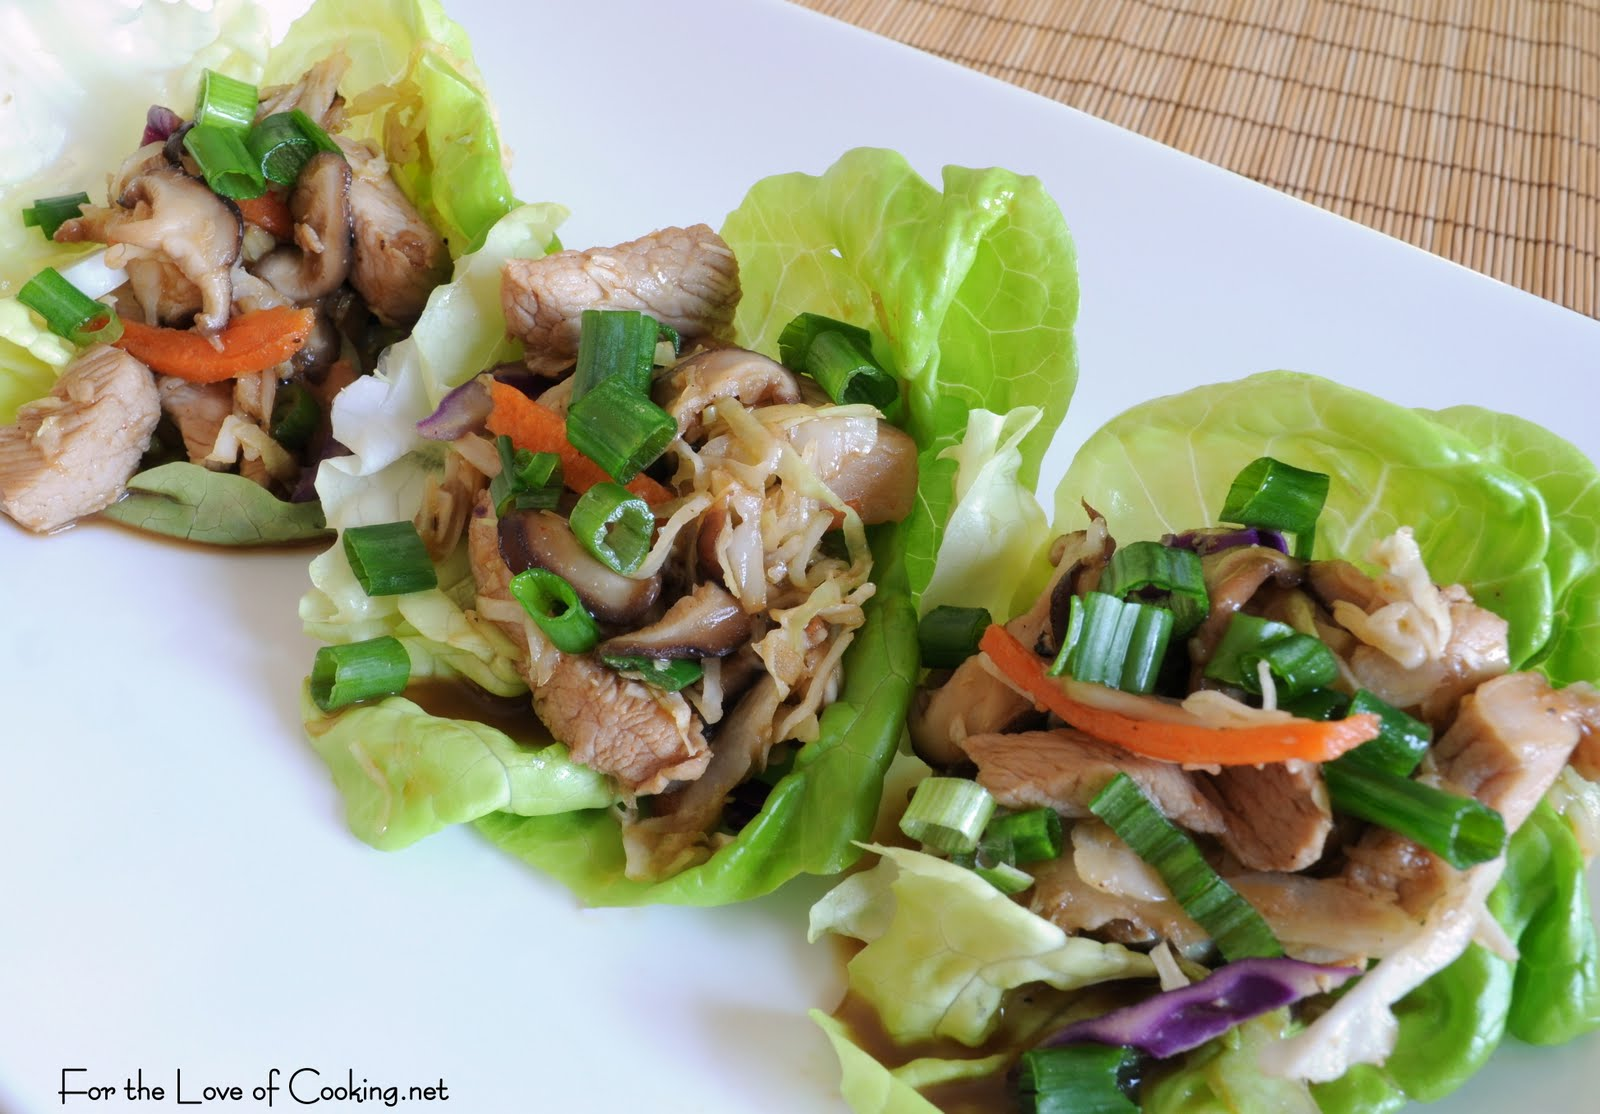 Moo Shu Pork | For the Love of Cooking